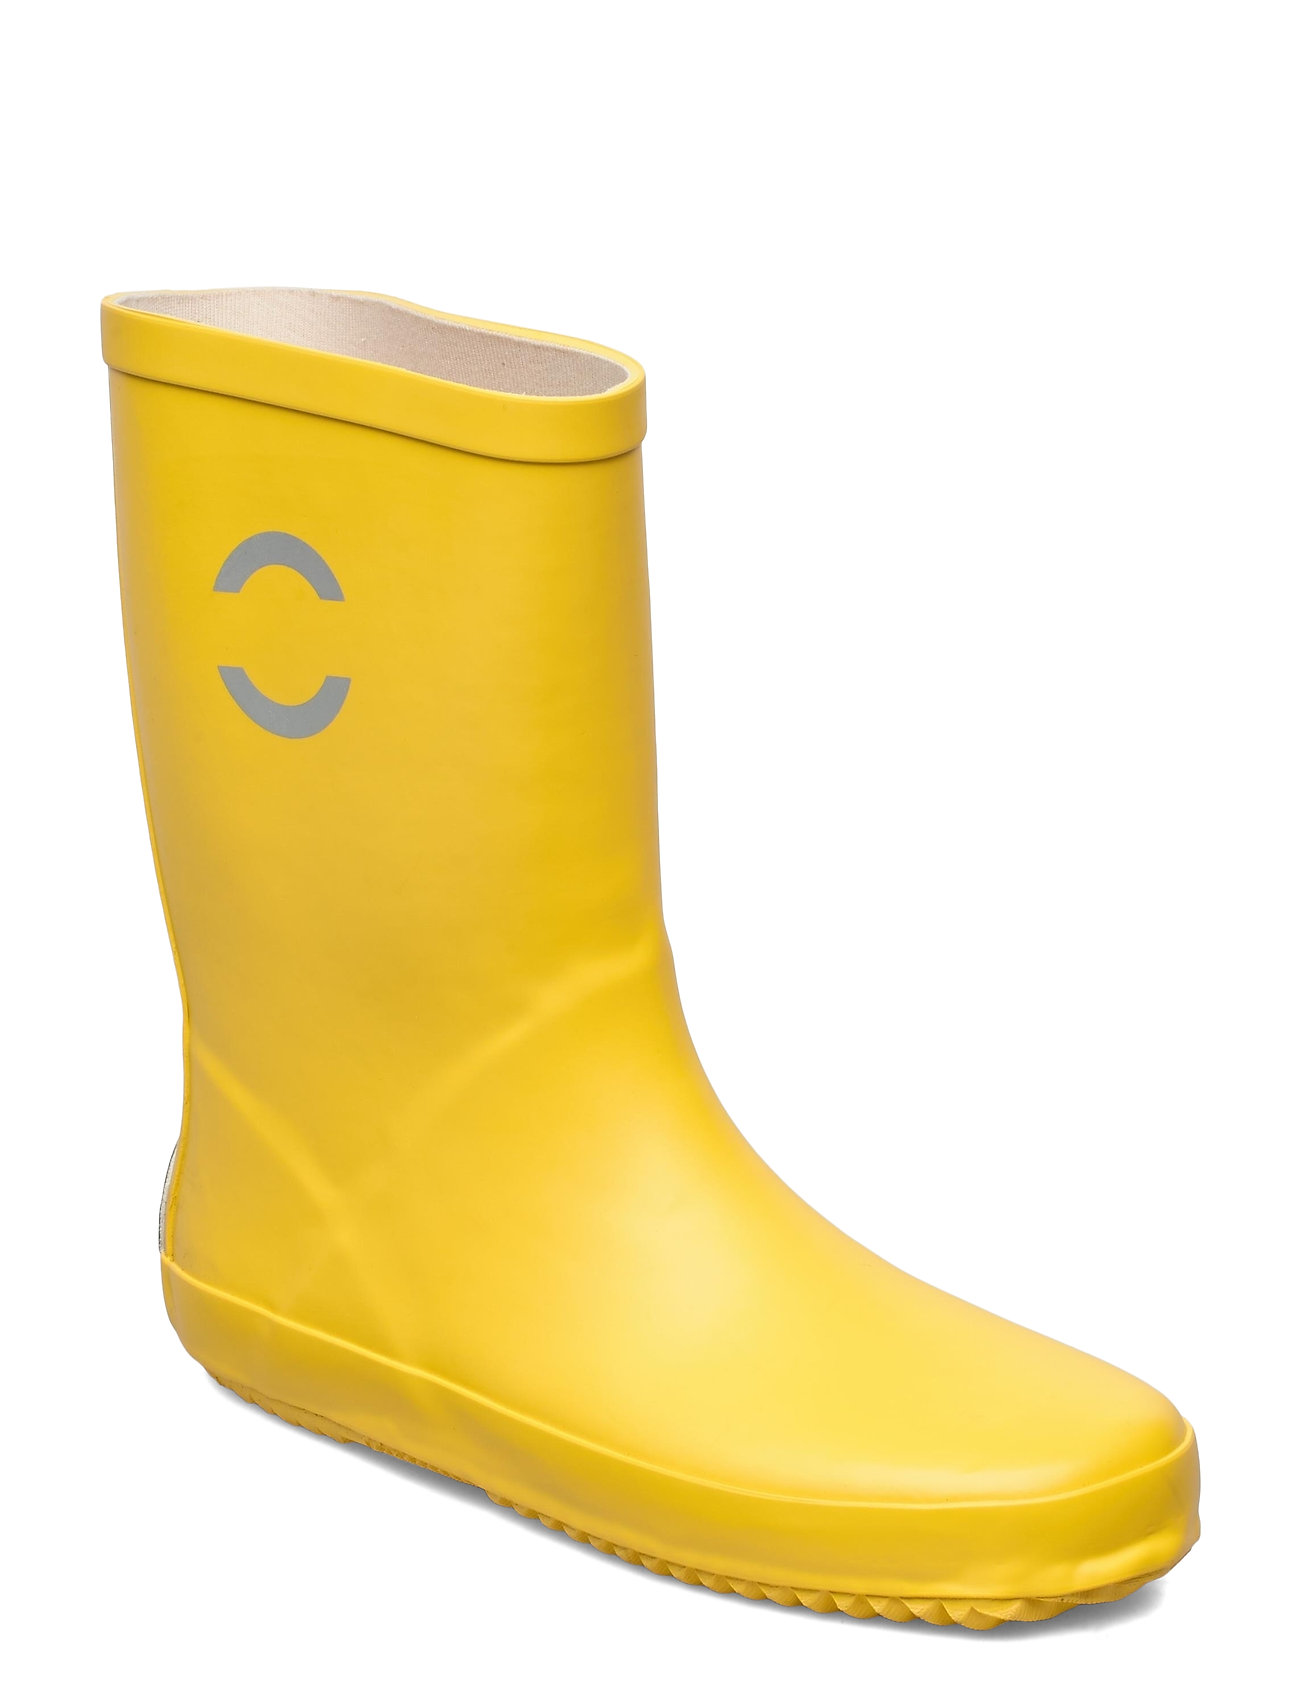 Image of Wellies - Solid Gummistøvler Gul Mikk-Line (3455225883)